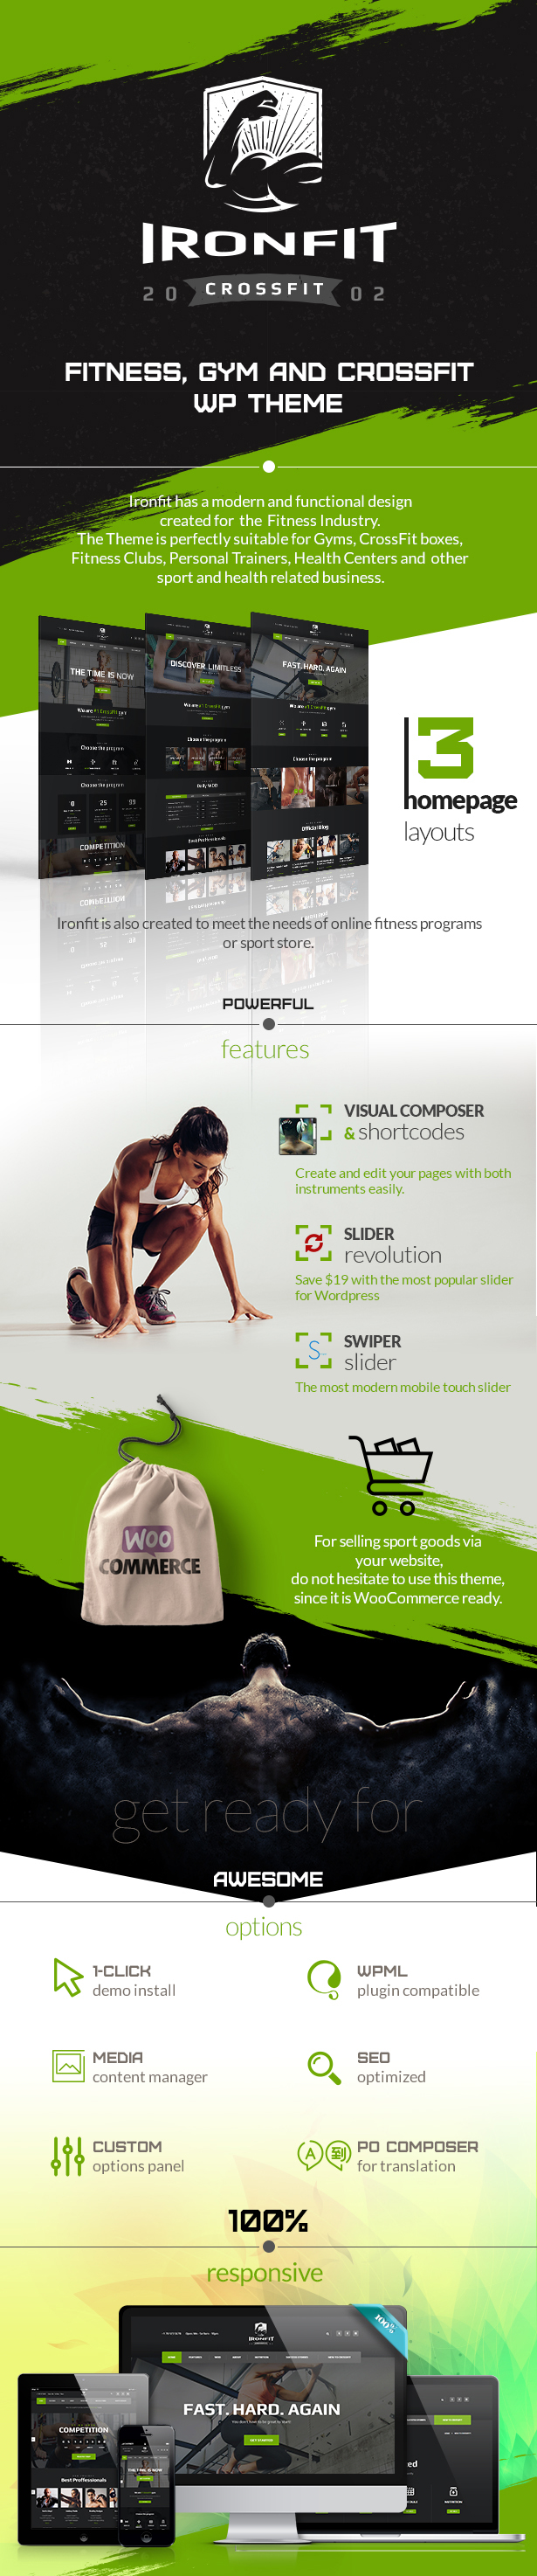 Ironfit - Fitness, Gym and Crossfit WordPress Theme - 2